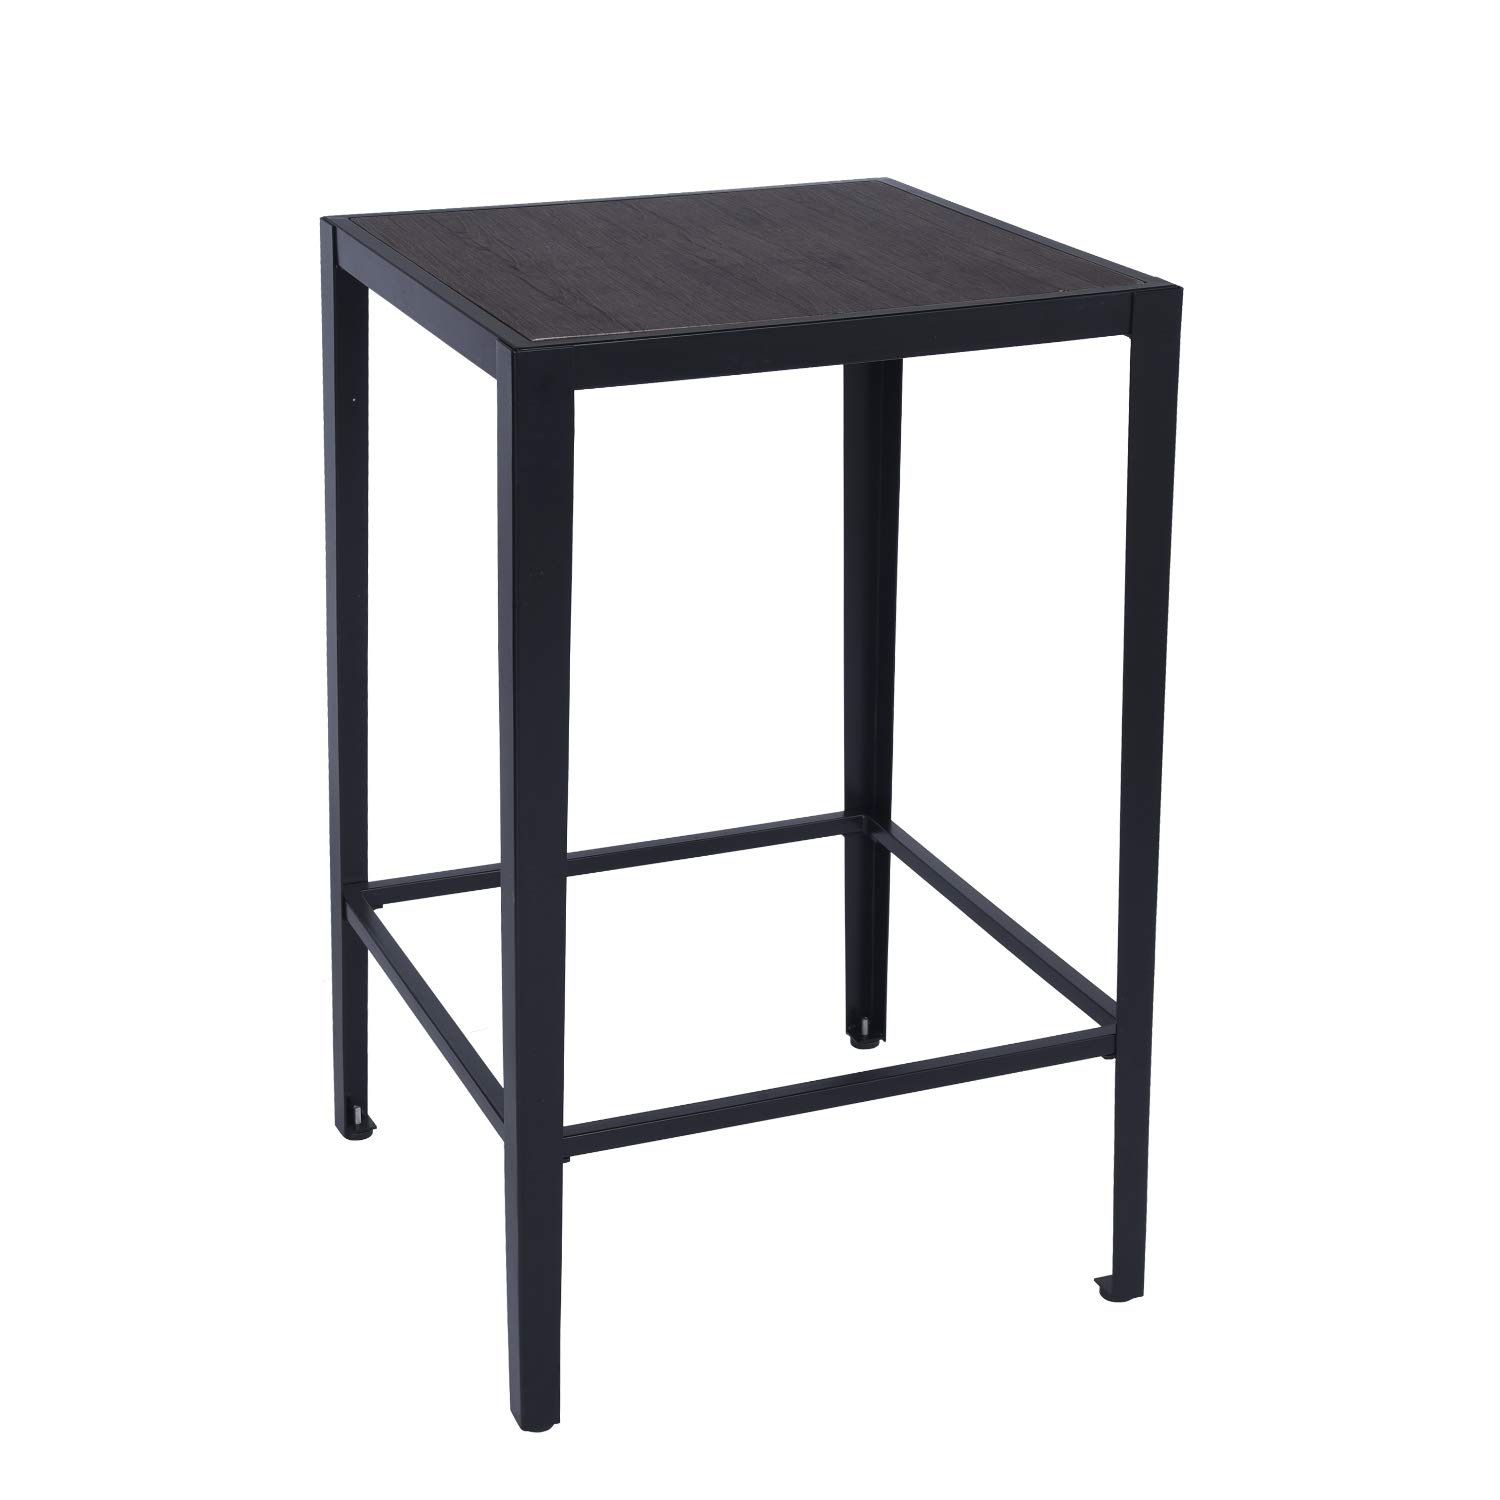 Pleasing Greenforest Bar Table Modern 38 4 Inch Height Square High Top Pub Dining Table With Metal Legs Walnut Ibusinesslaw Wood Chair Design Ideas Ibusinesslaworg